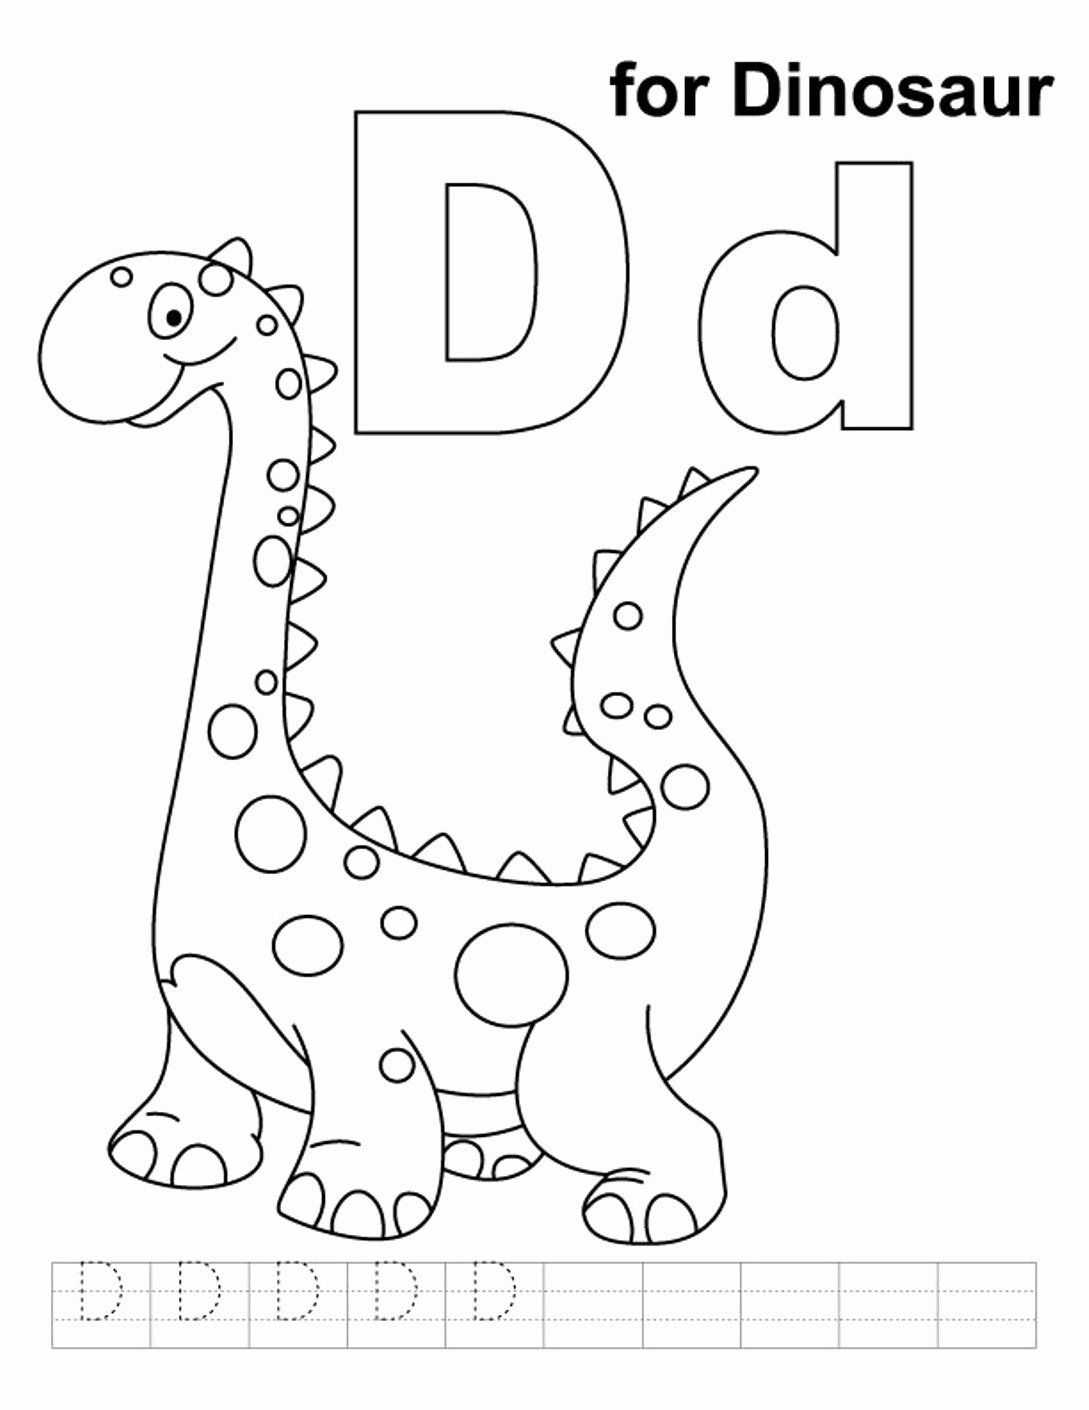 Alphabet Coloring Worksheets For 3 Year Olds In 2020 with Alphabet Worksheets 3 Year Olds